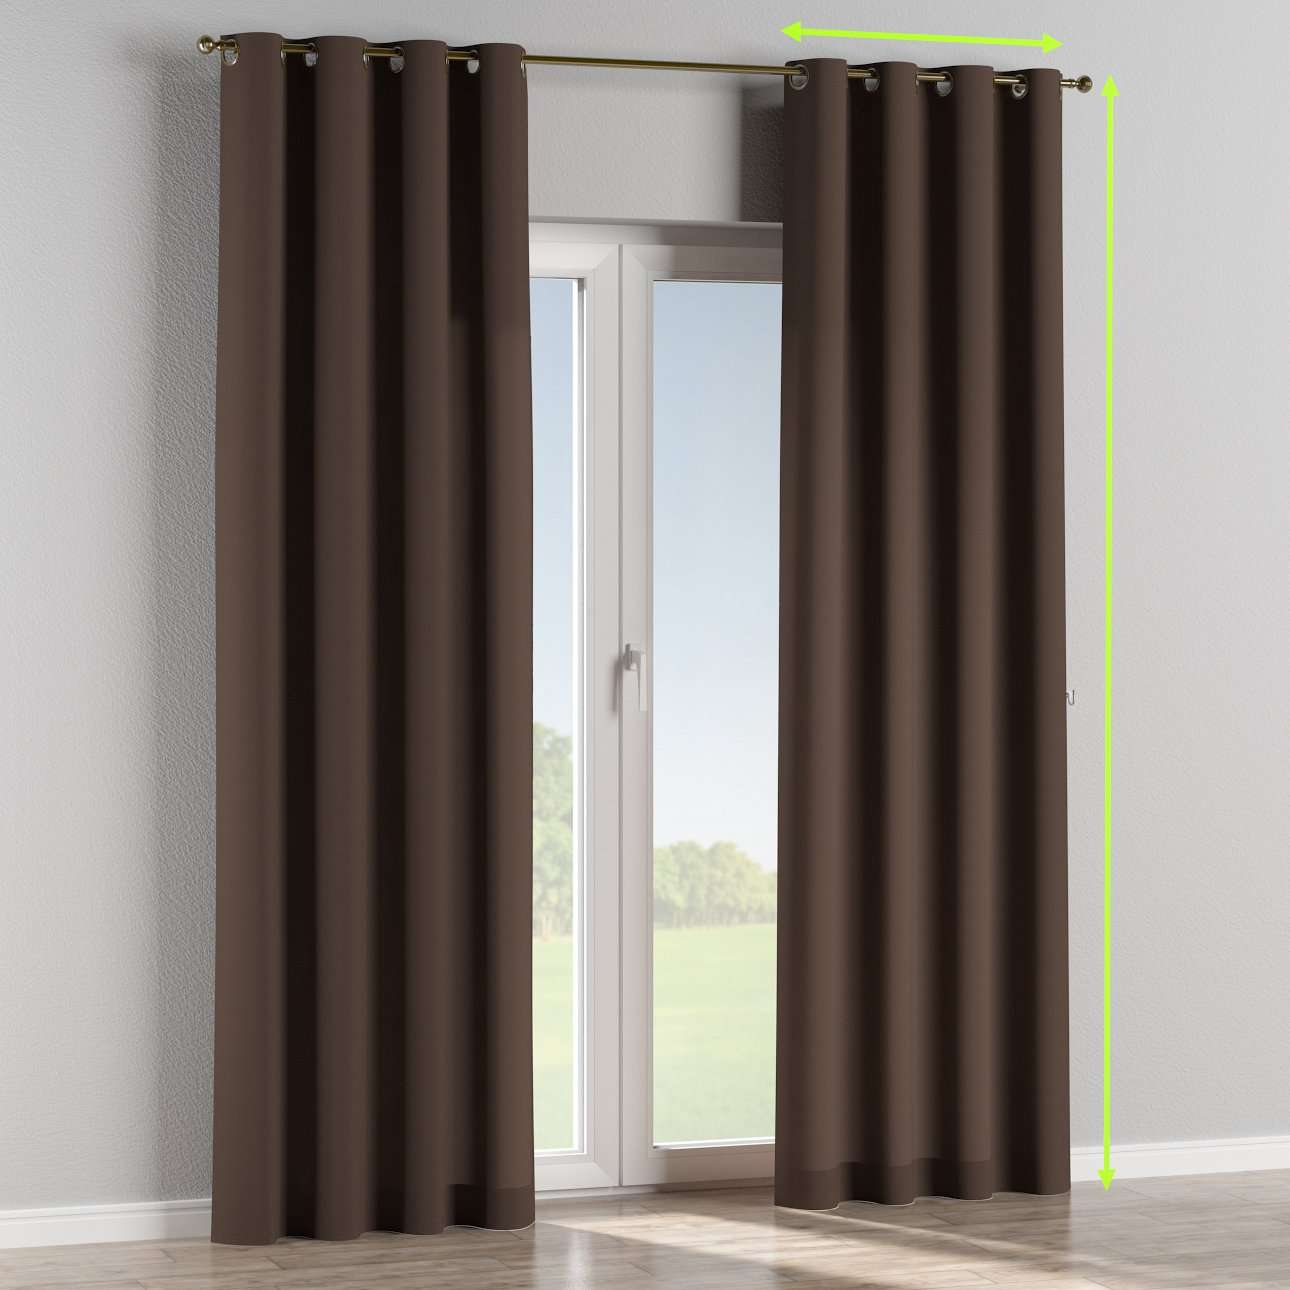 Eyelet curtains in collection Cotton Panama, fabric: 702-03